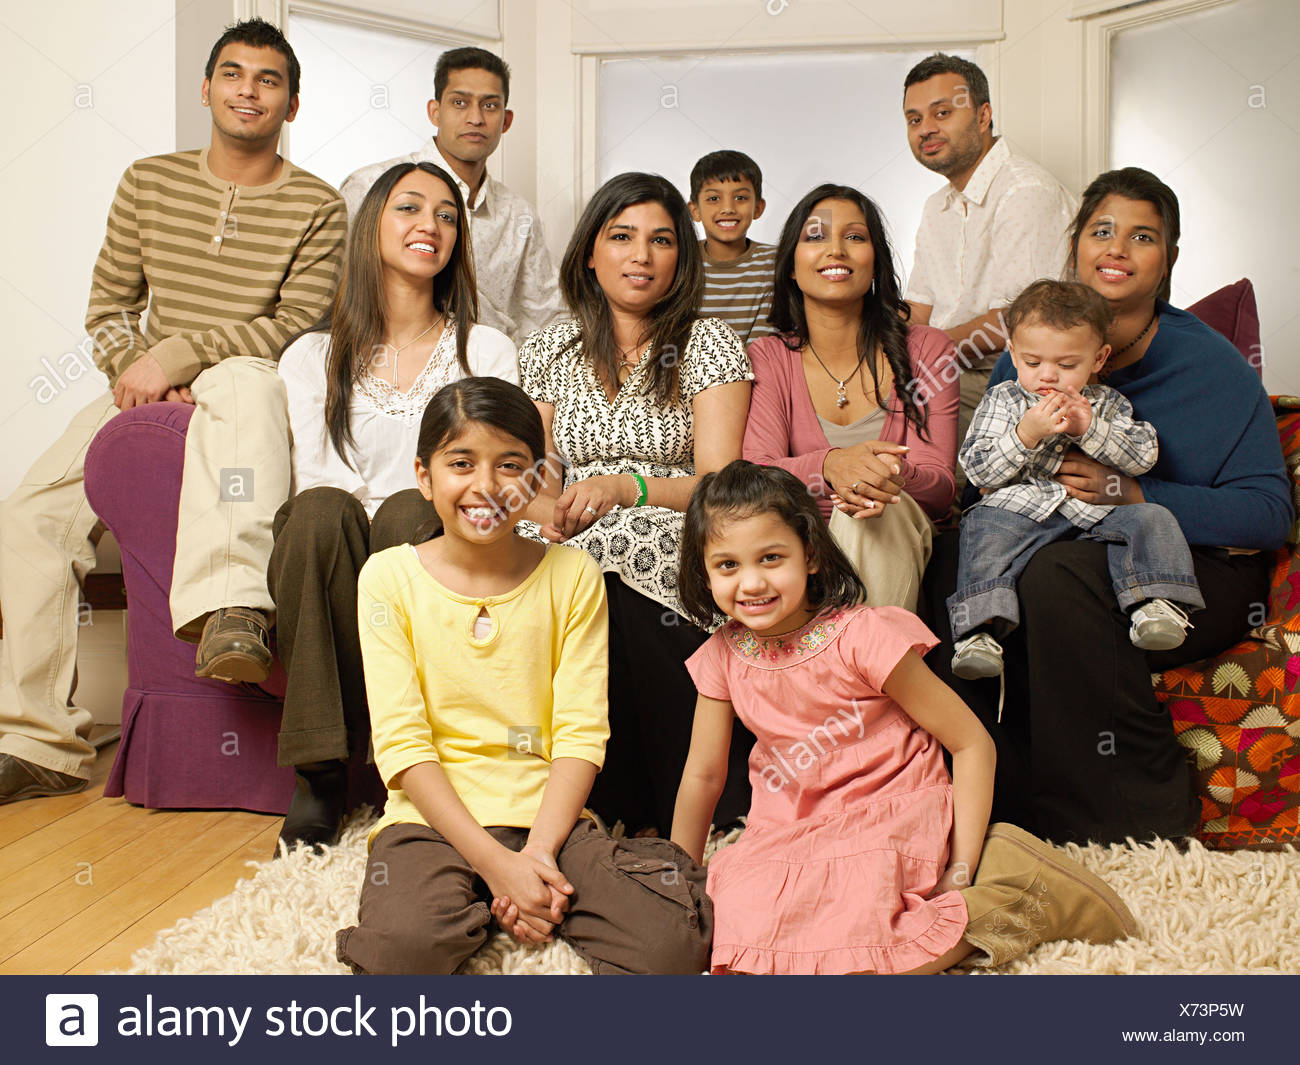 Large indian family in living room - Stock Image